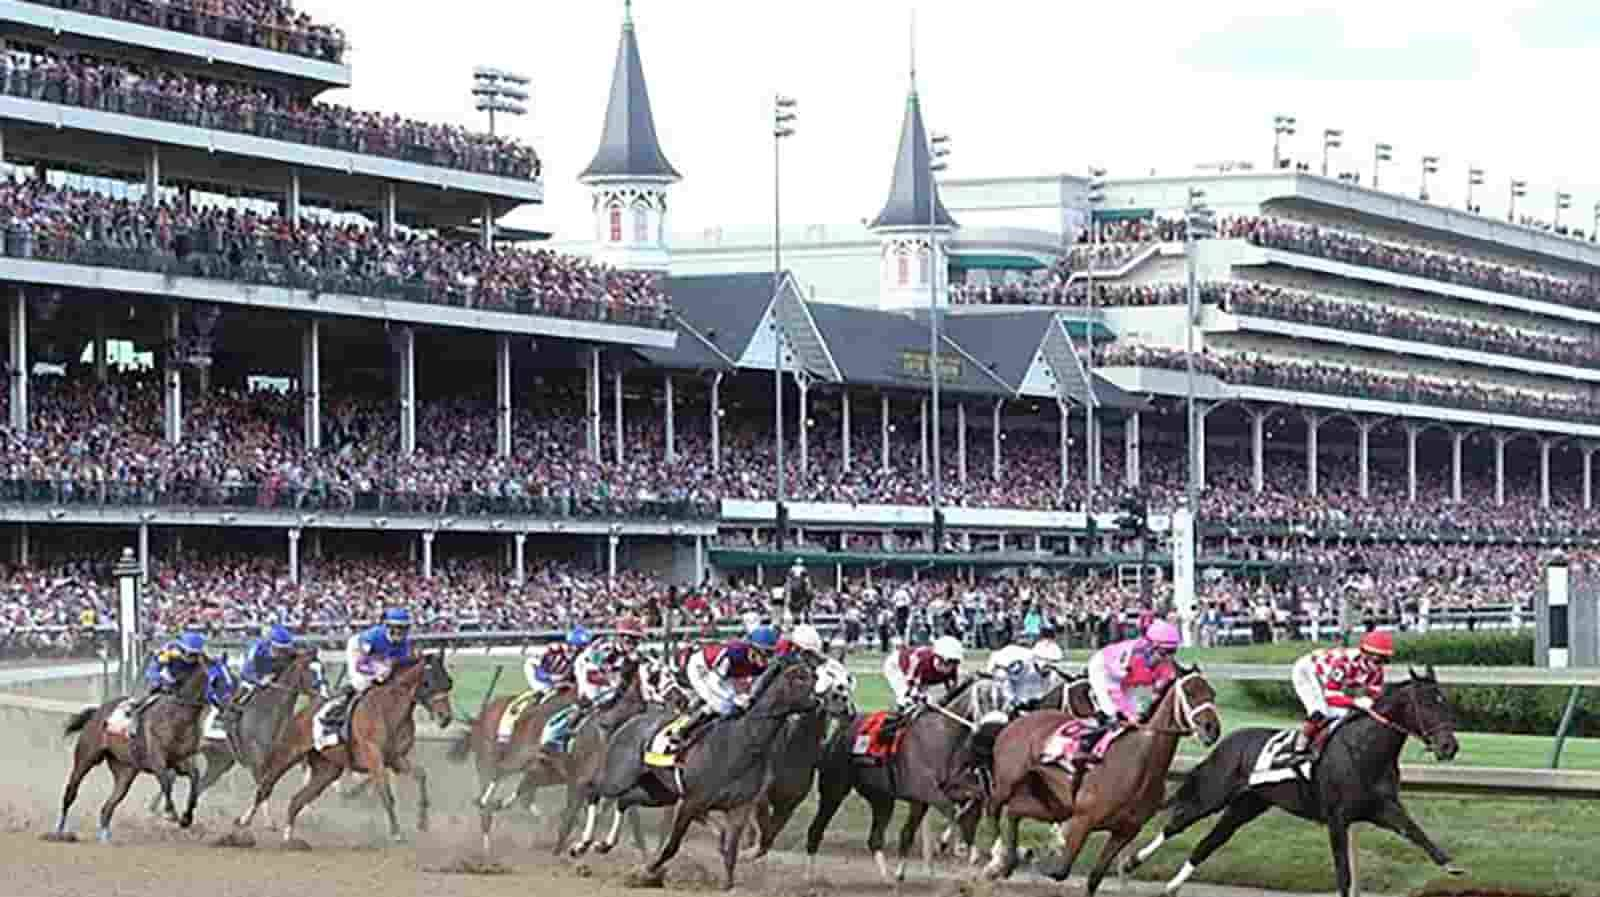 2020 Kentucky Derby - 2 Day Pass (9/4 - 9/5) (Rescheduled from 5/1 - 5/2)